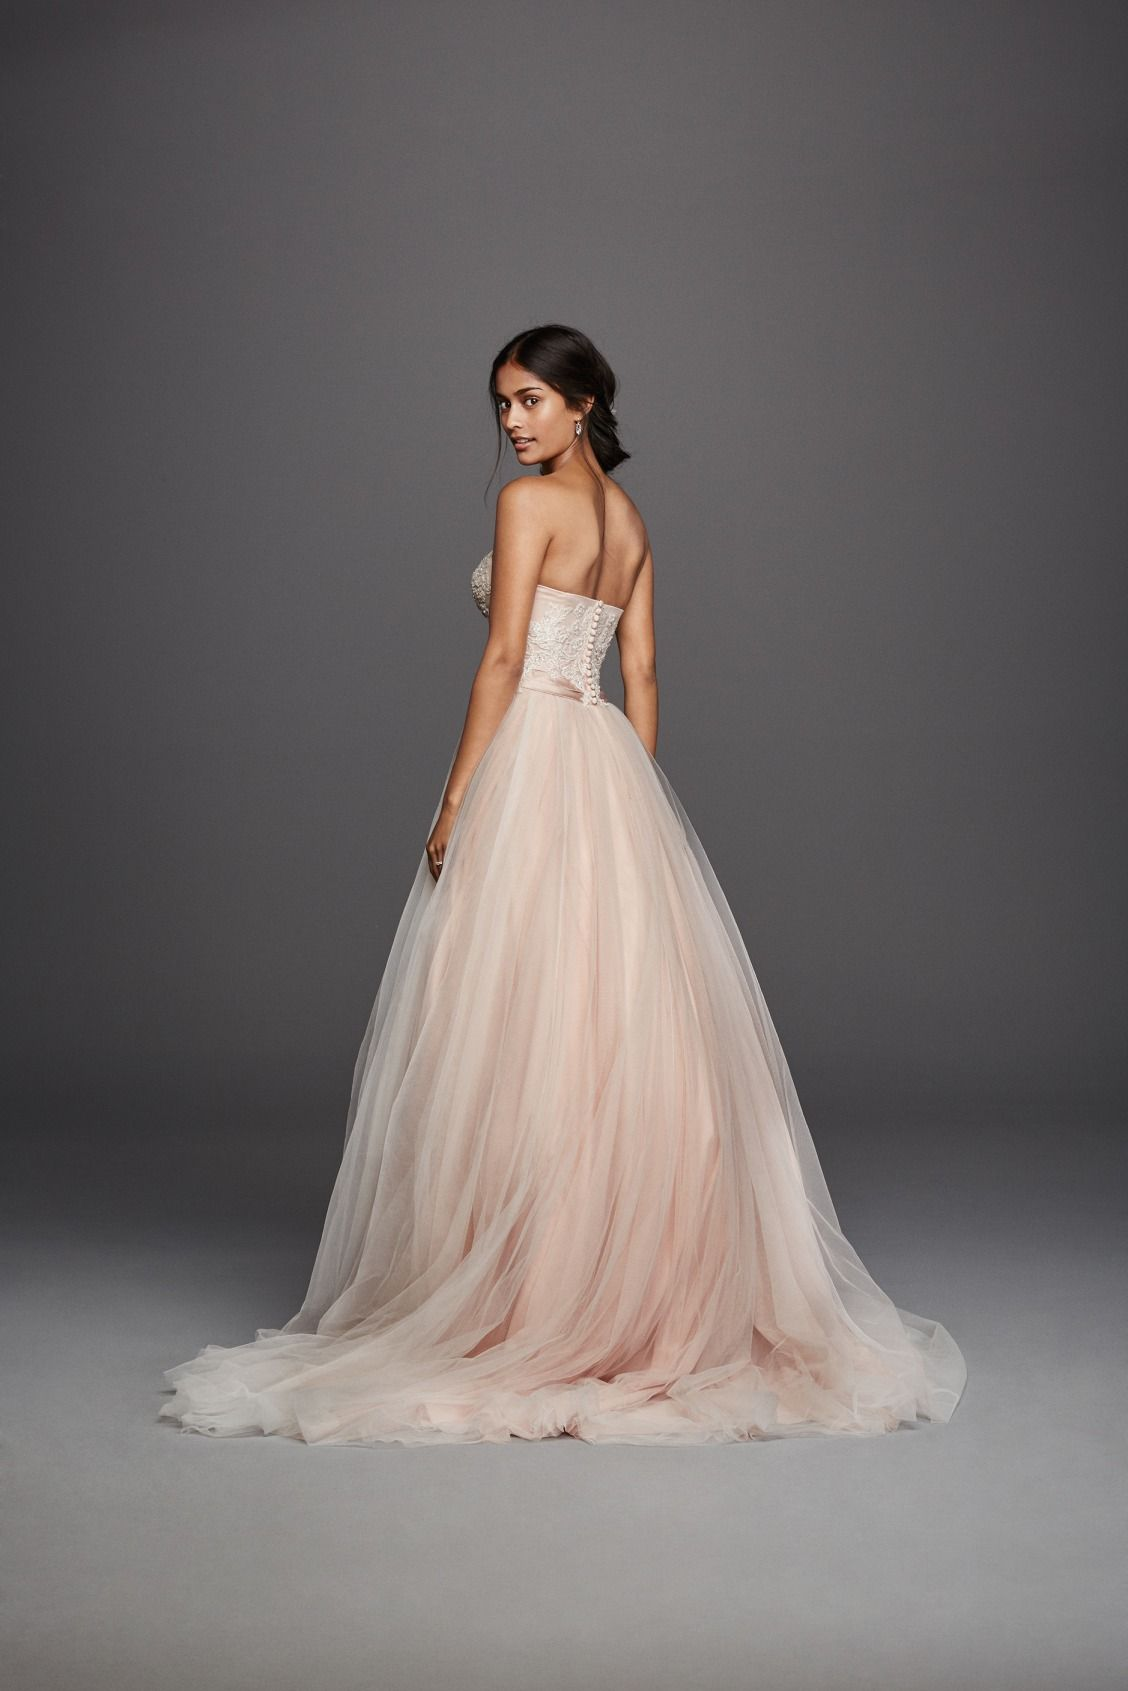 Strapless Ivory Blush Tulle Beaded Lace Ball Gown Jewel Wedding Dress Available At David S Bridal